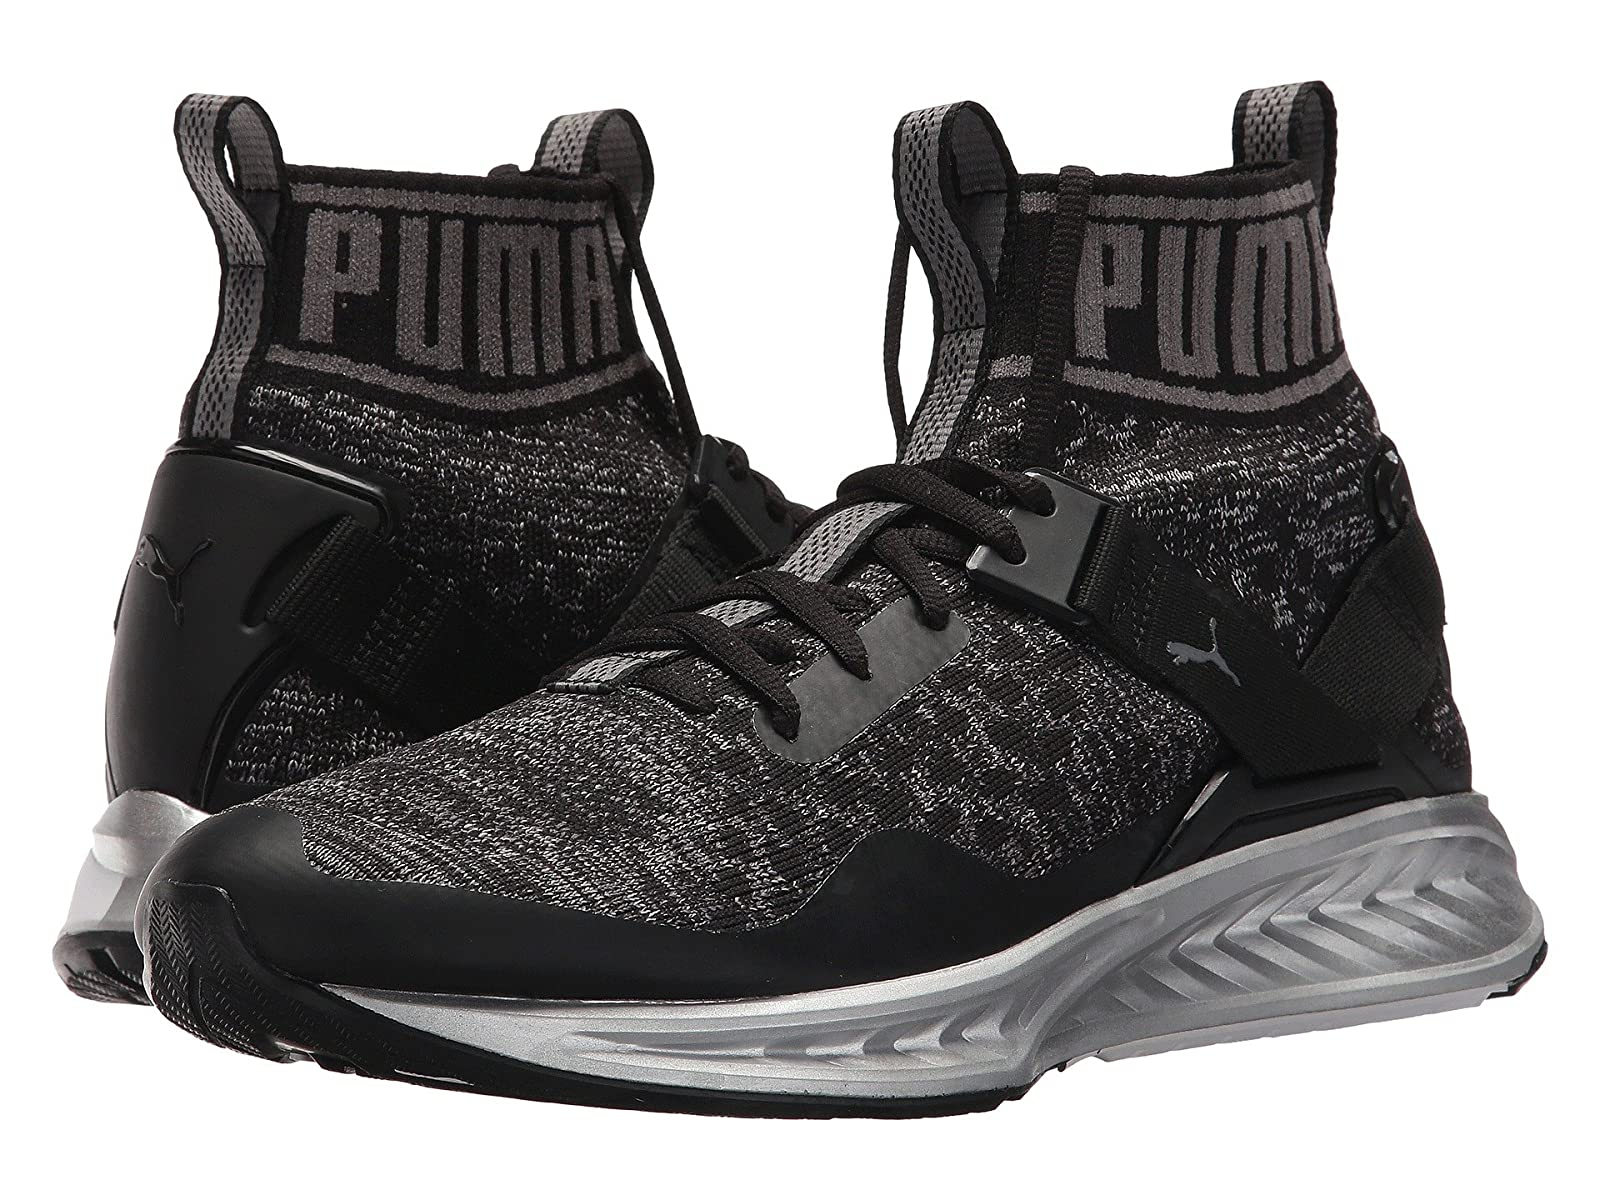 PUMA Ignite evoKNIT NCCheap and distinctive eye-catching shoes